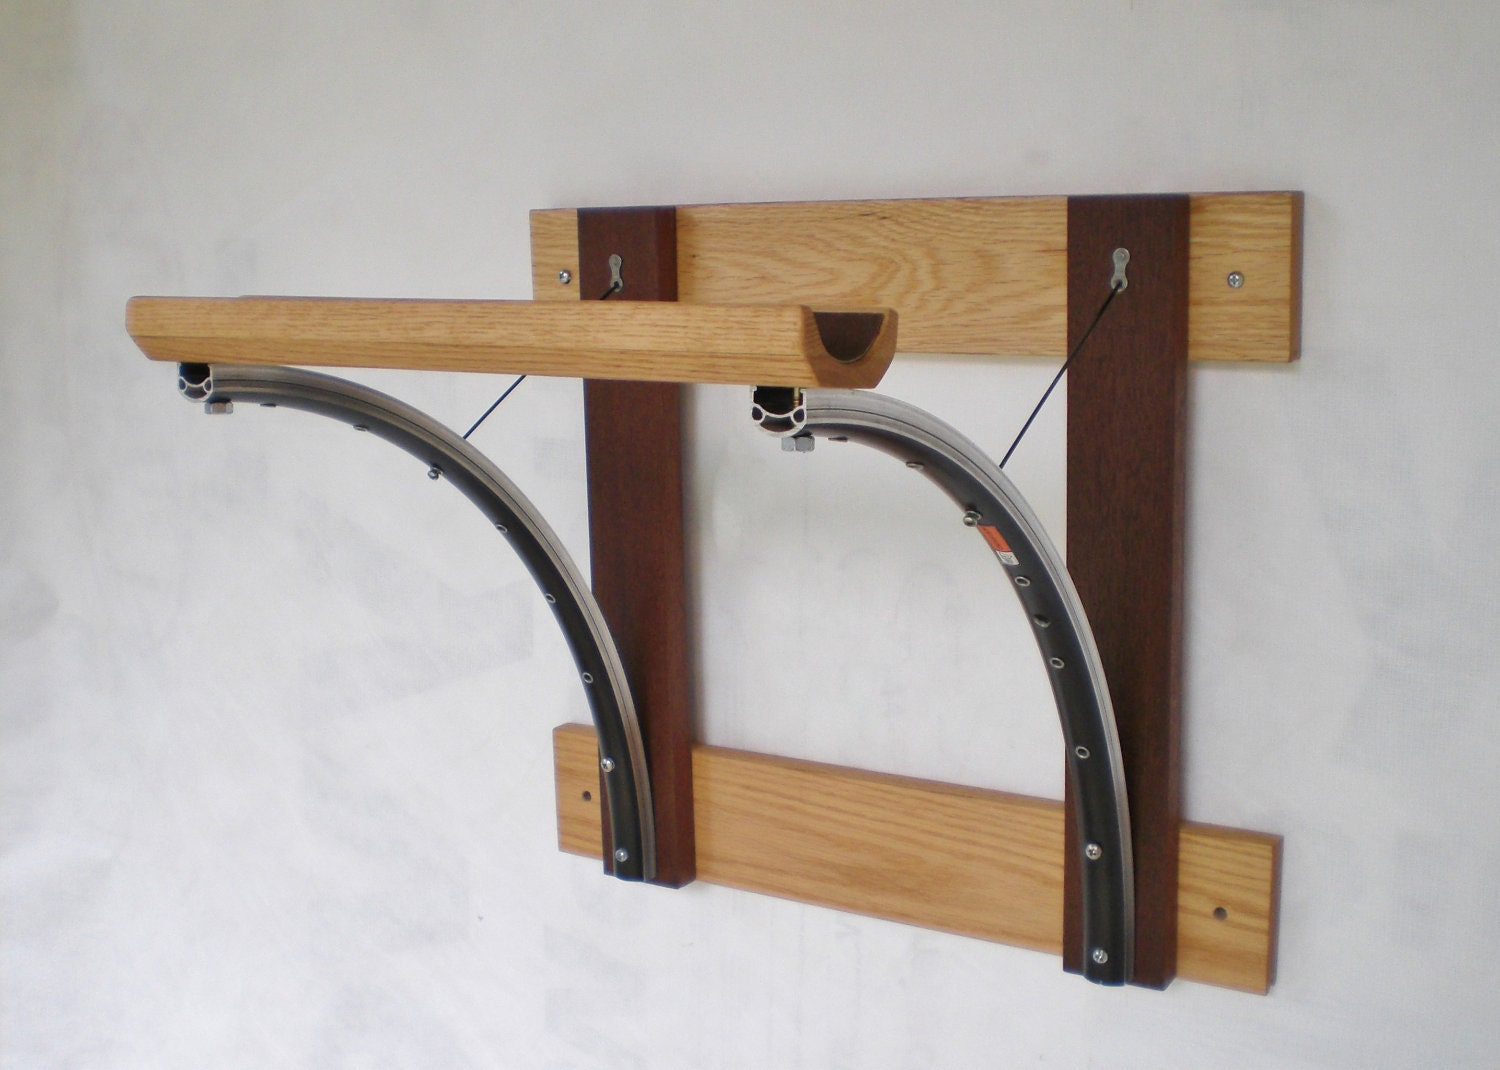 Bicycle Rack Reclaimed Wood And Recycled Bicycle Parts Bicycle